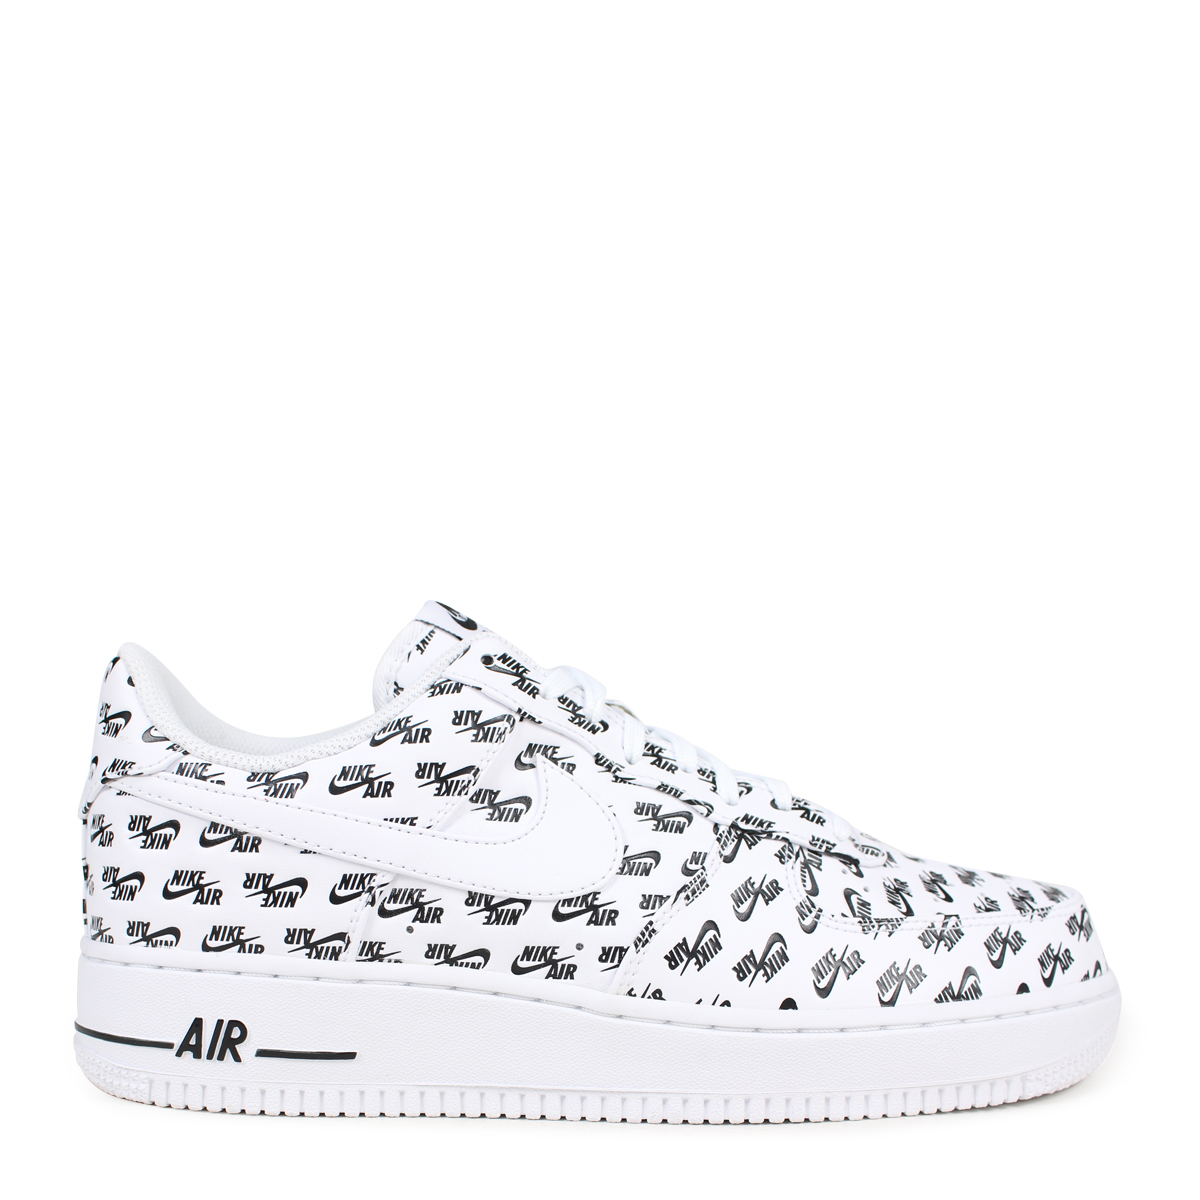 NIKE AIR FORCE 1 QS ALL OVER LOGO Nike air force 1 07 sneakers men  AH8462-100 white [load planned Shinnyu load in reservation product 3/15  containing] [183]